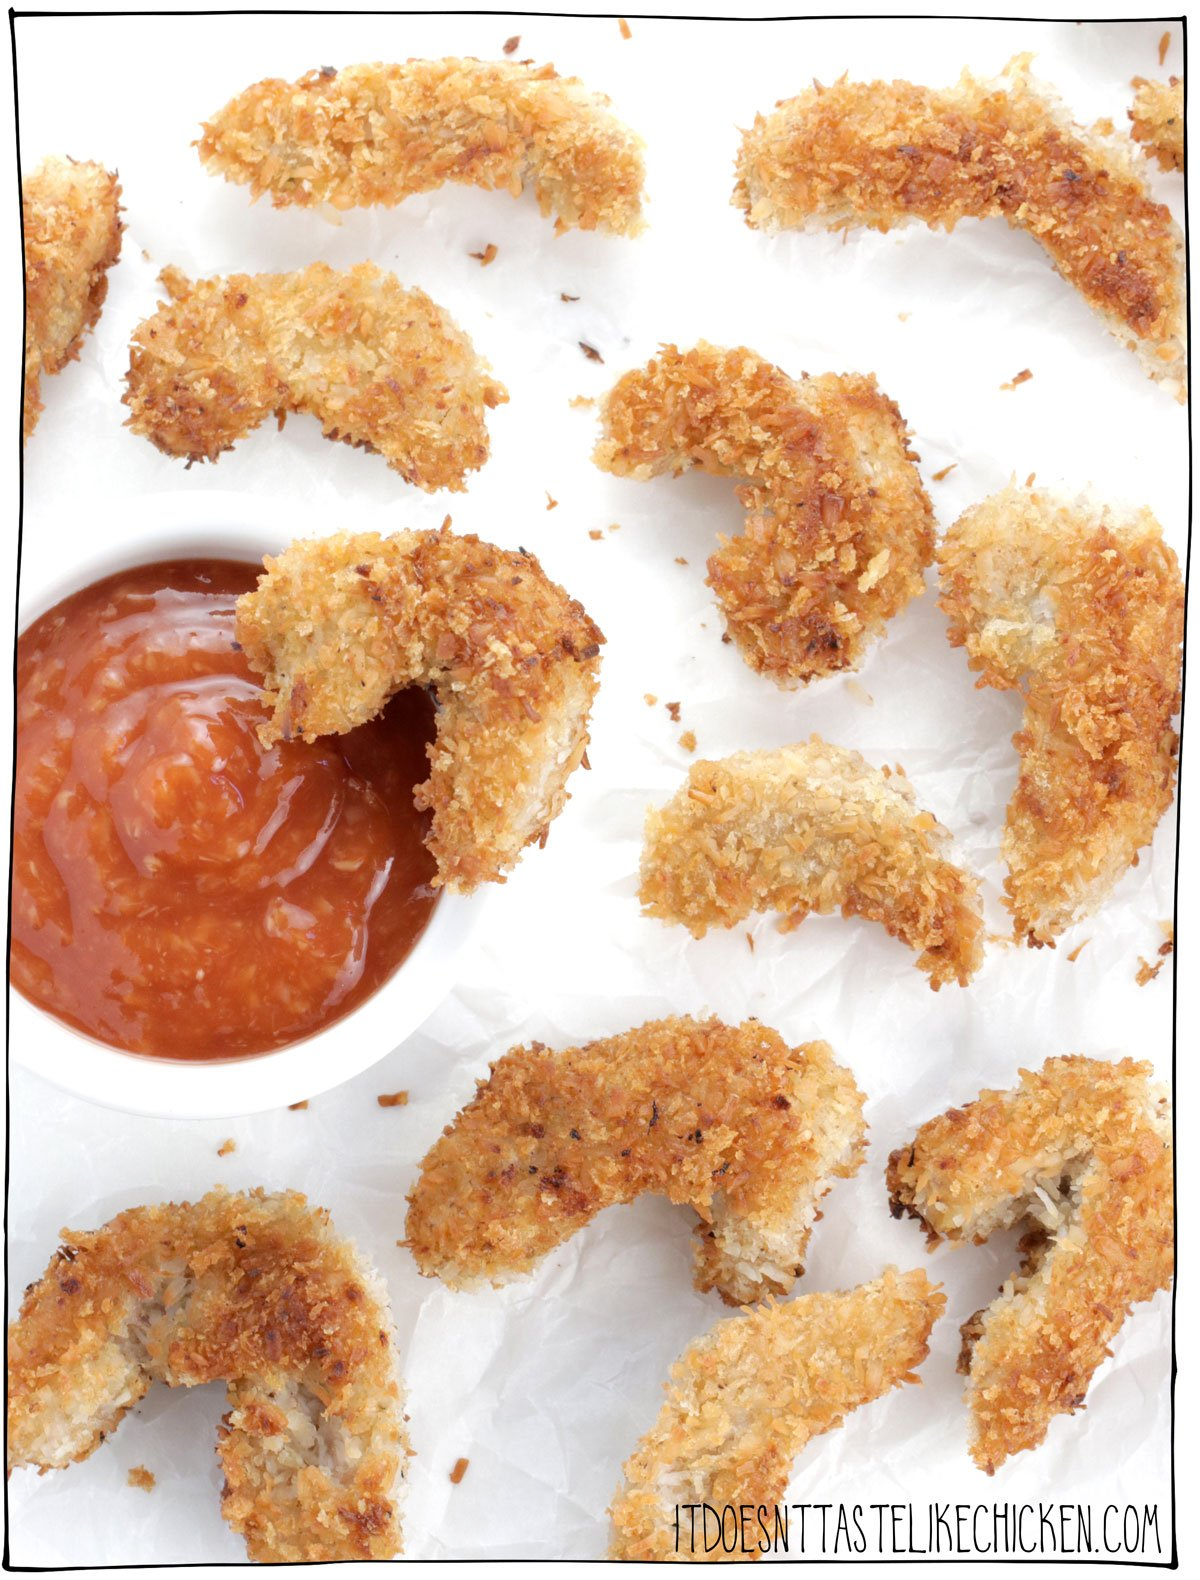 Coconut Crusted Vegan Shrimp! Golden, crispy, coconut coated on the outside, lightly chewy, juicy, with a slight taste of the sea on the inside. Serve these with homemade cocktail sauce for a real crowd-pleaser. The secret ingredient to make these shrimp: soy curls! Oil-free and air fryer versions are included in the recipe notes! #itdoesnttastelikechicken #veganshrimp #veganseafood